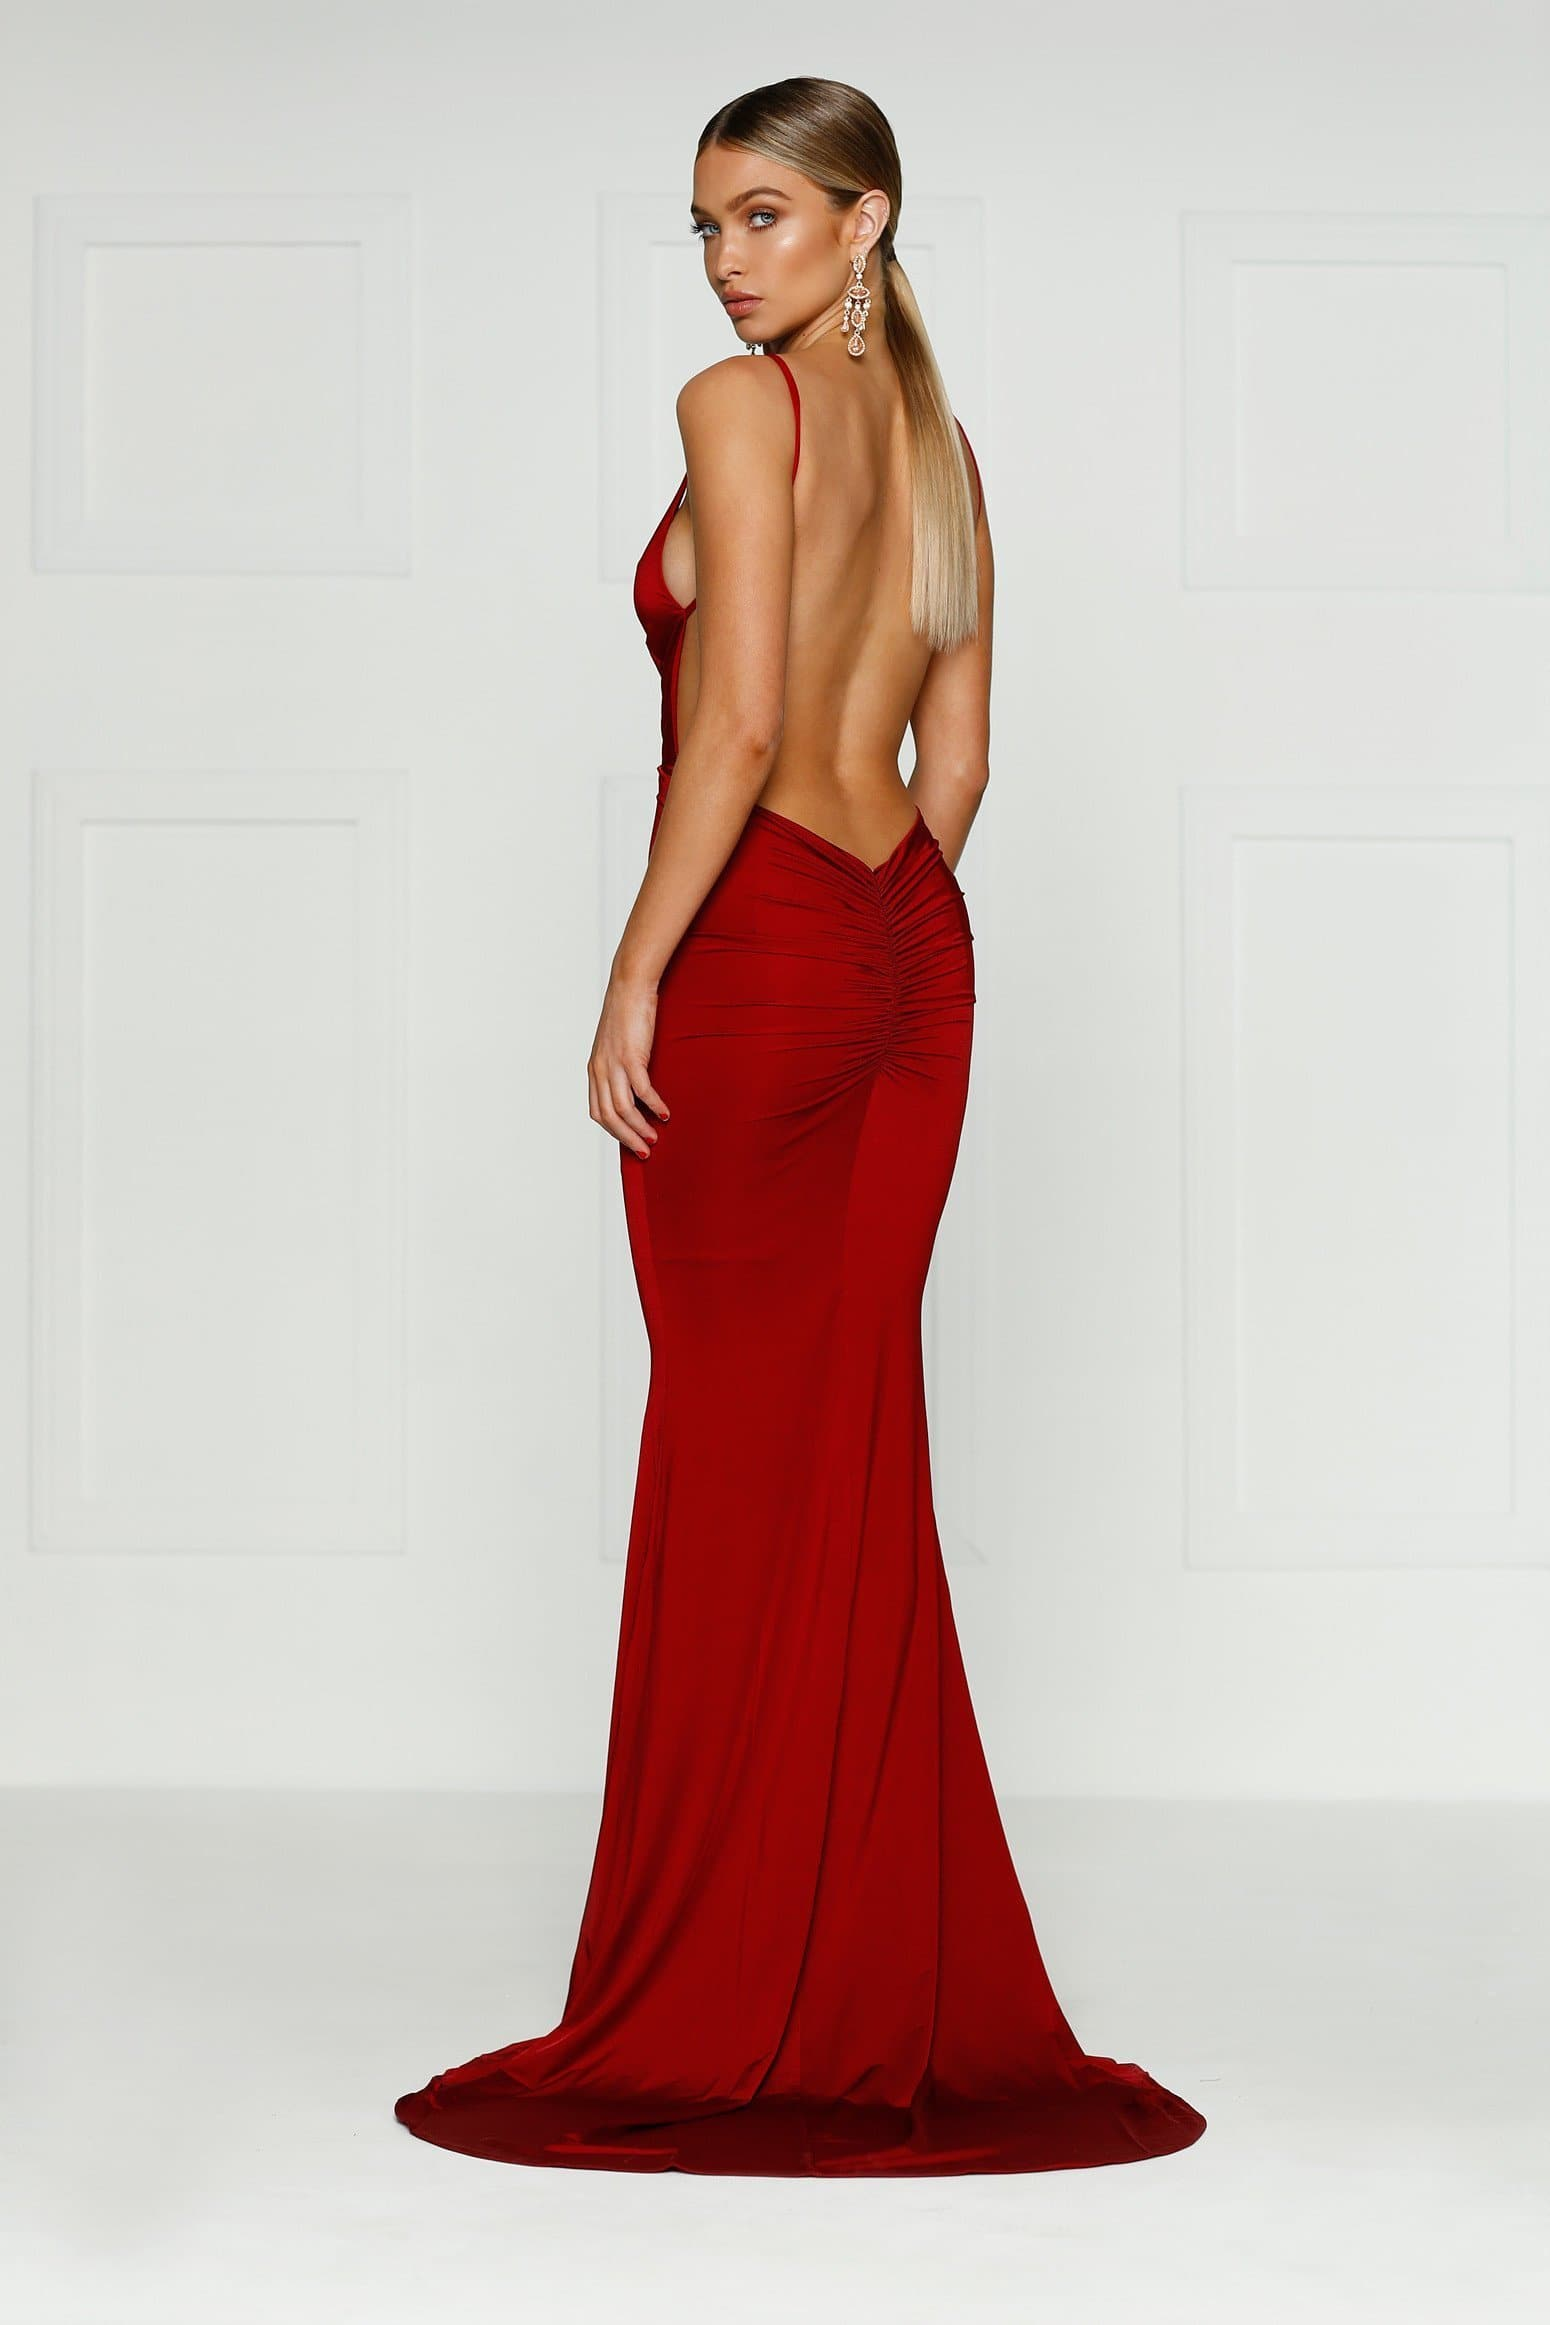 Selina - Wine Red V Neck Dress in Jersey Stretchy Fabric with Straps